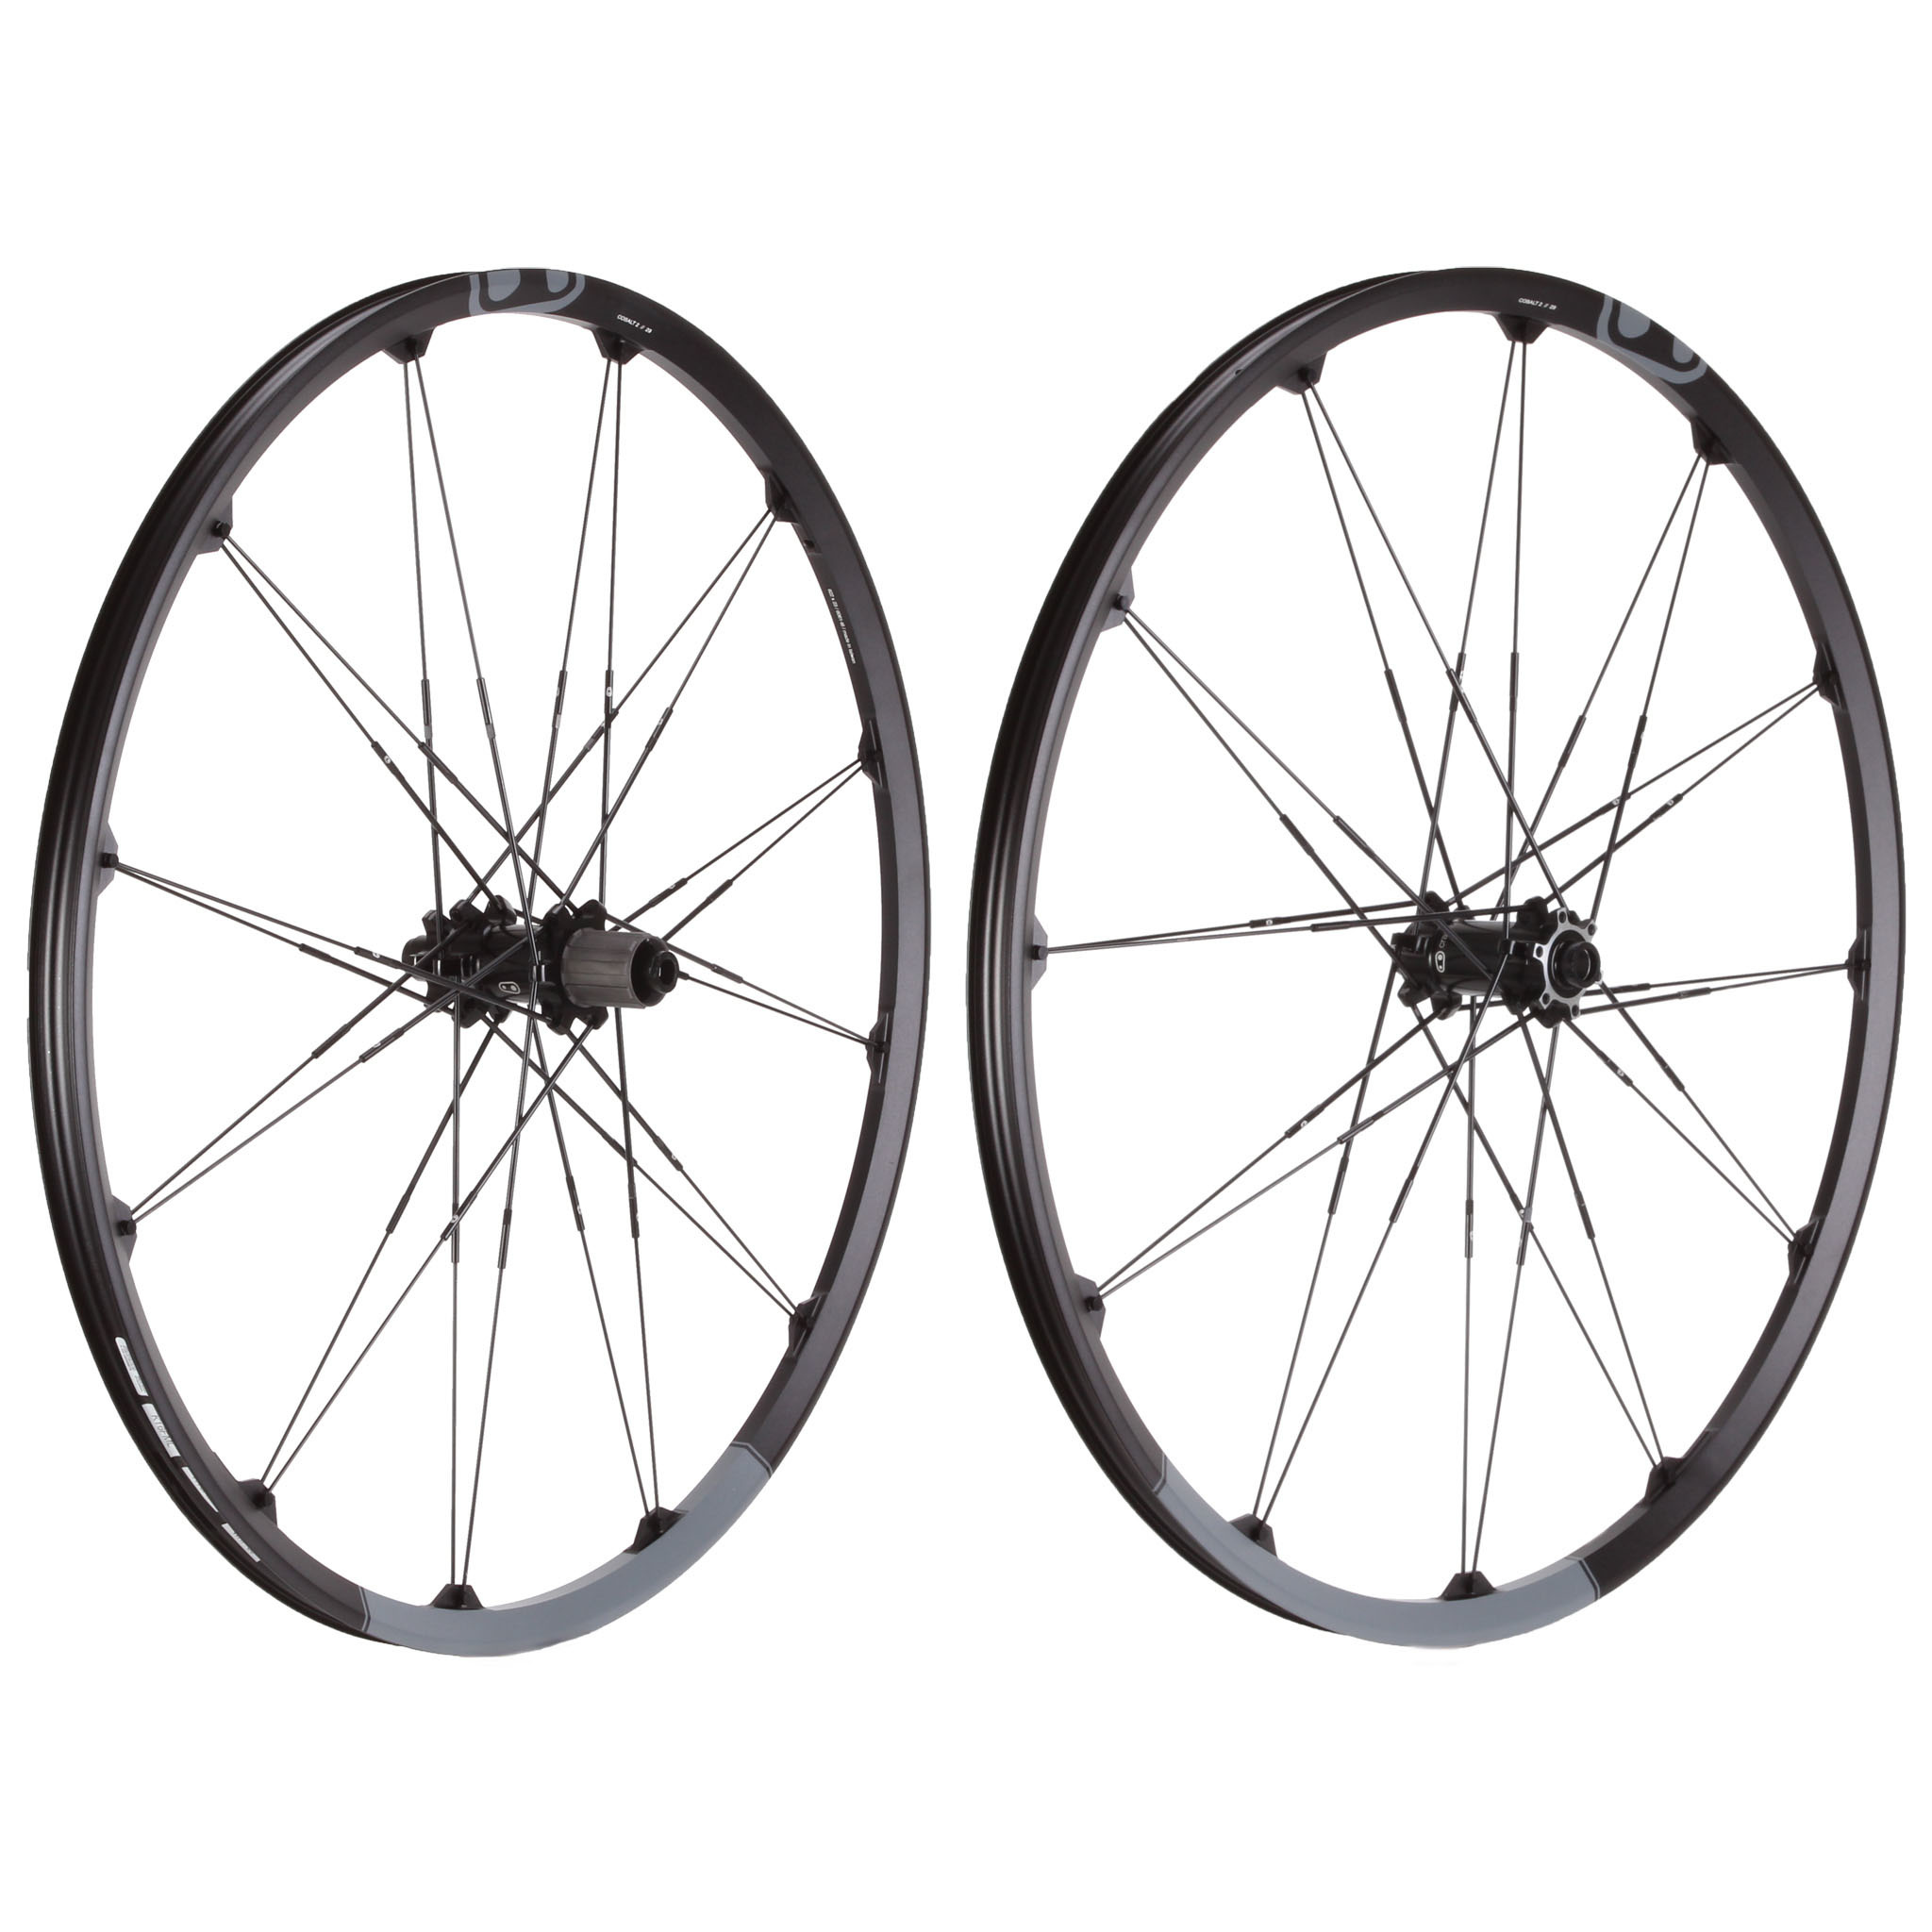 "Crank Brothers Cobalt-2 29"" Wheelset, 15x100/12x142mm Blk/Gry"